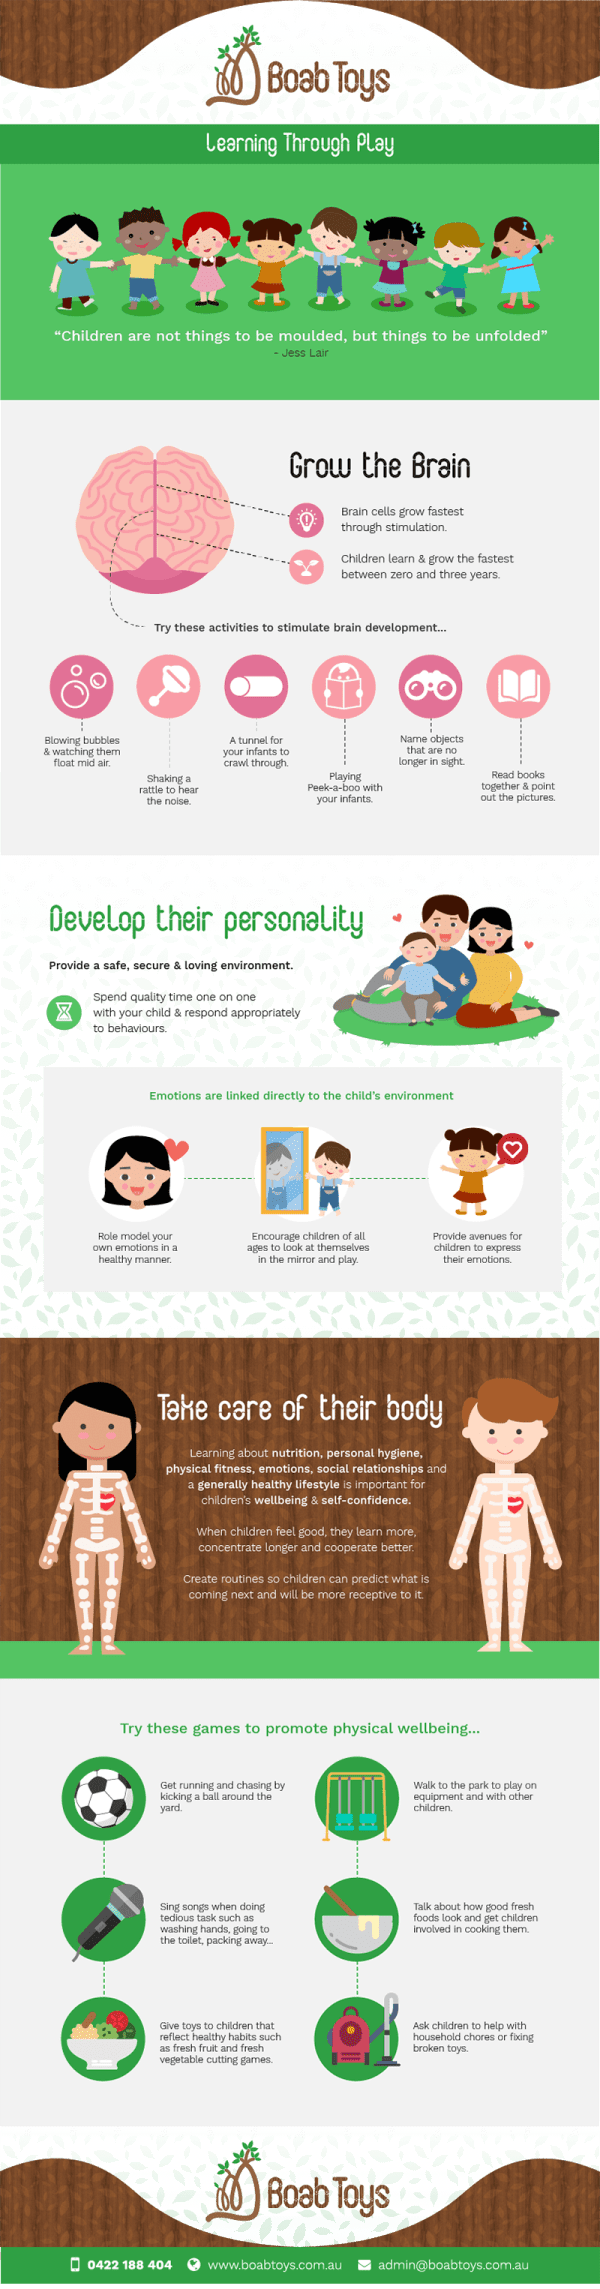 Boab-Toys-Learning-Through-Play-Infographic